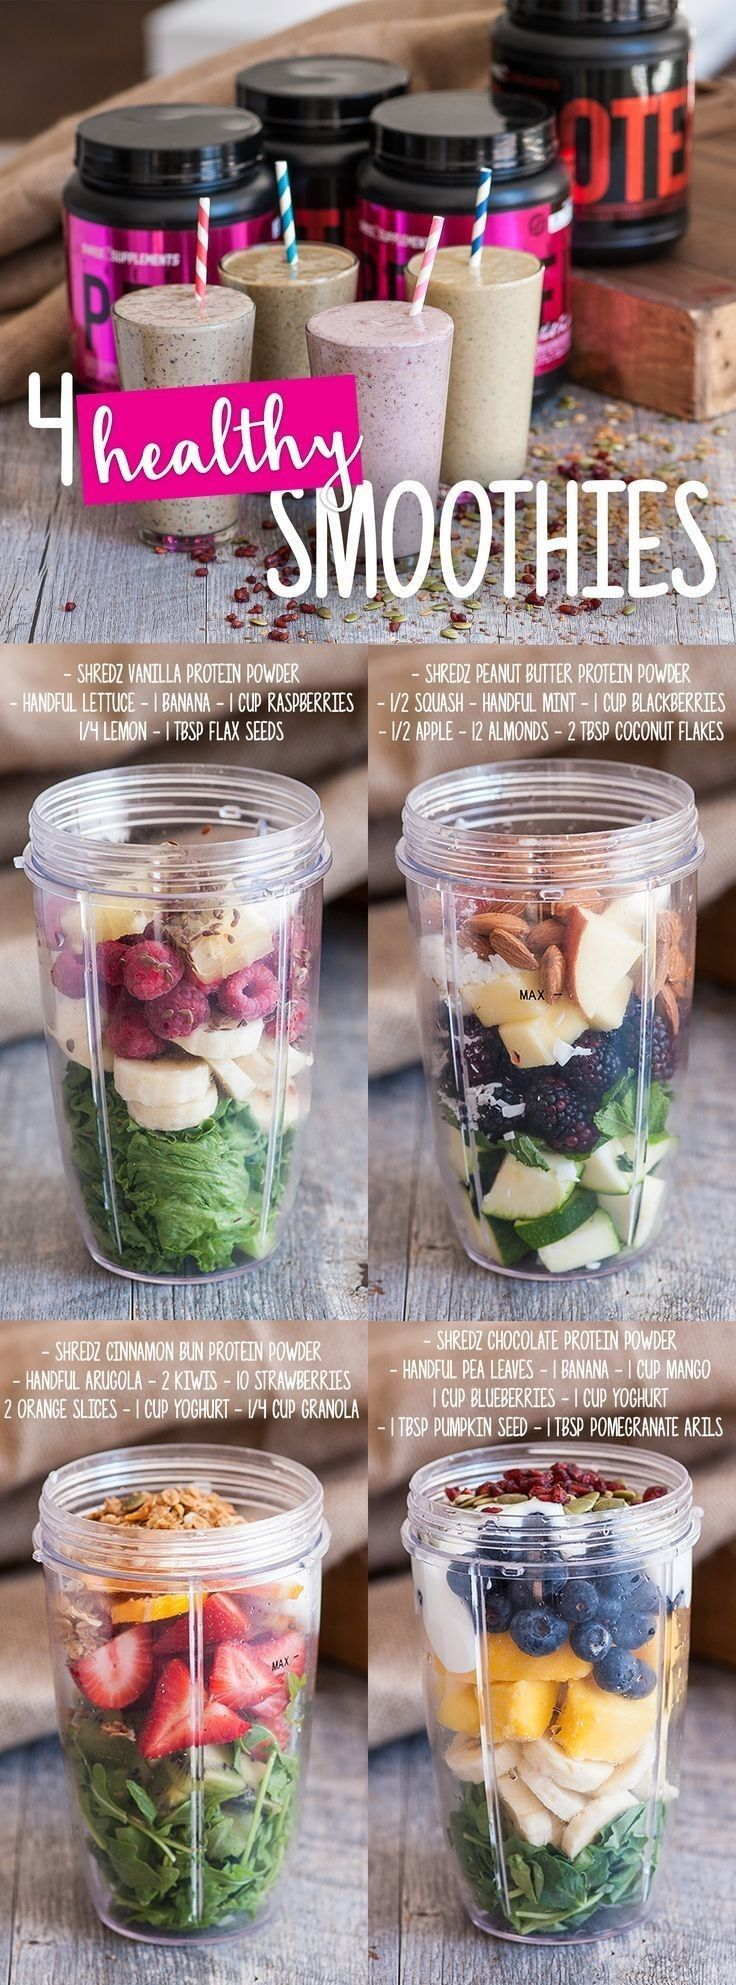 4 yummy and healthy smoothies